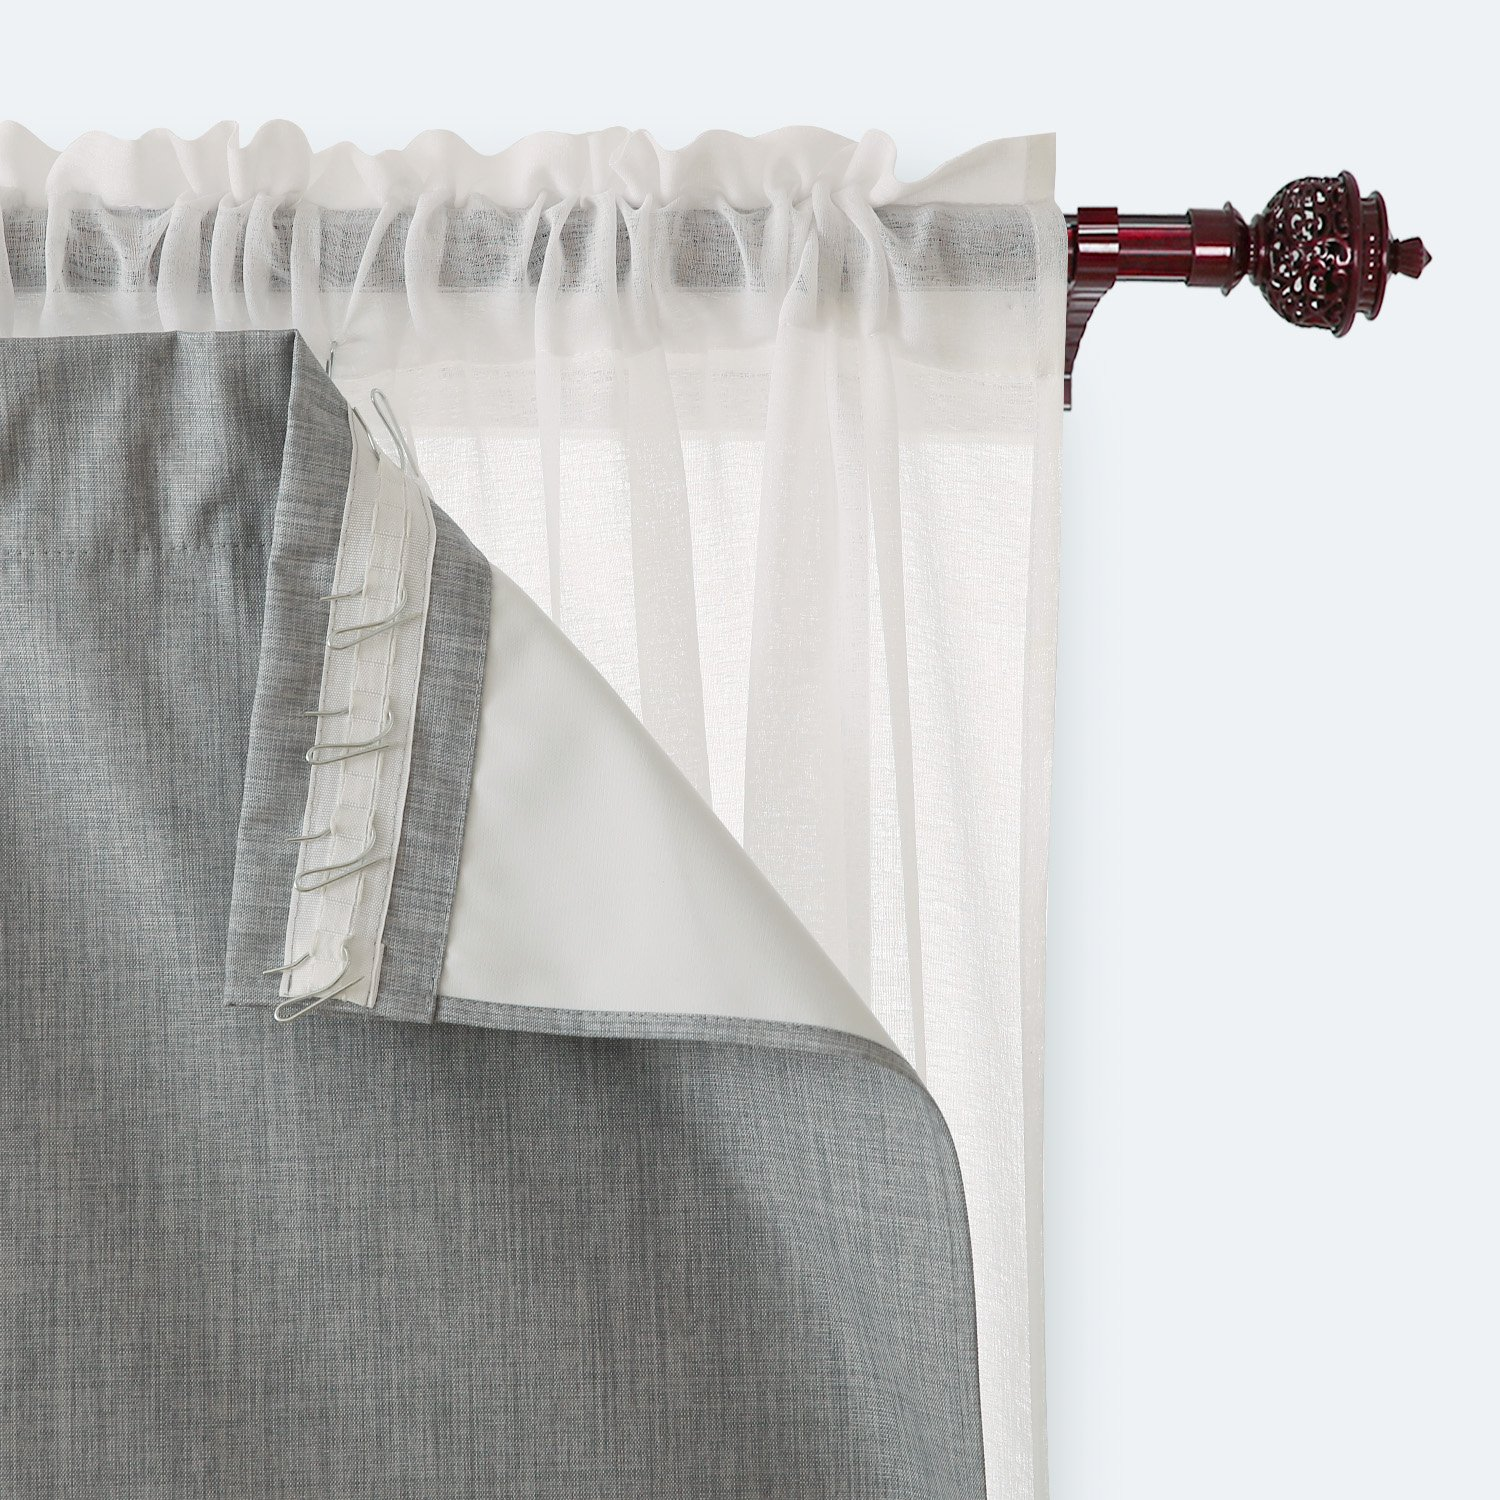 Deconovo Blackout Curtain Liner Rod Pocket Curtains with Foam Back Curtains for Kids Room Light Grey 27 Inch By 92 Inch 2 Panels Curtain Hooks Included